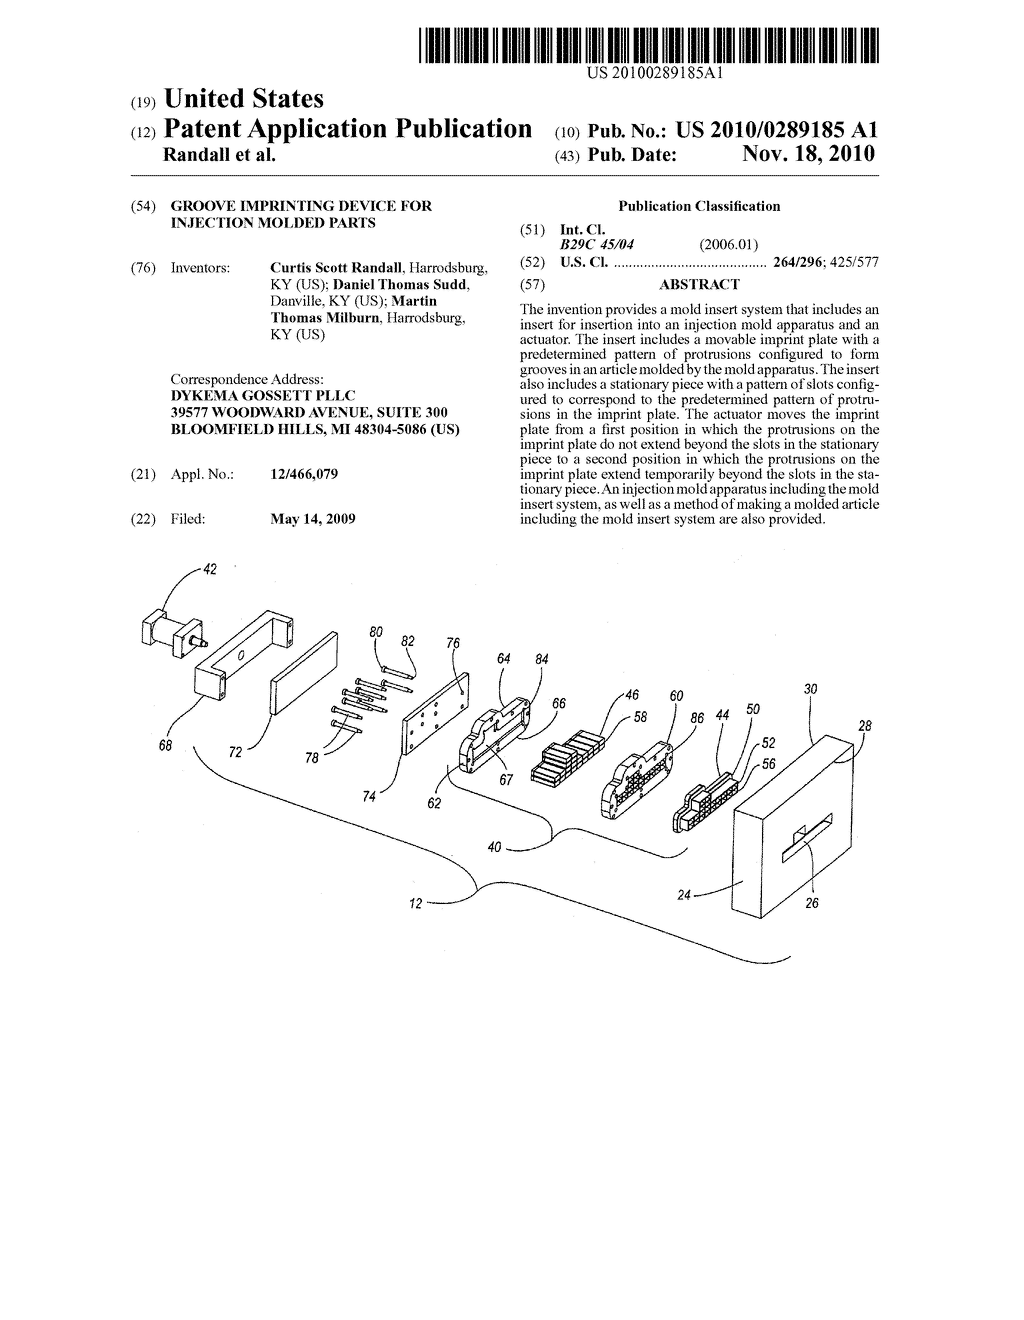 GROOVE IMPRINTING DEVICE FOR INJECTION MOLDED PARTS - diagram, schematic, and image 01